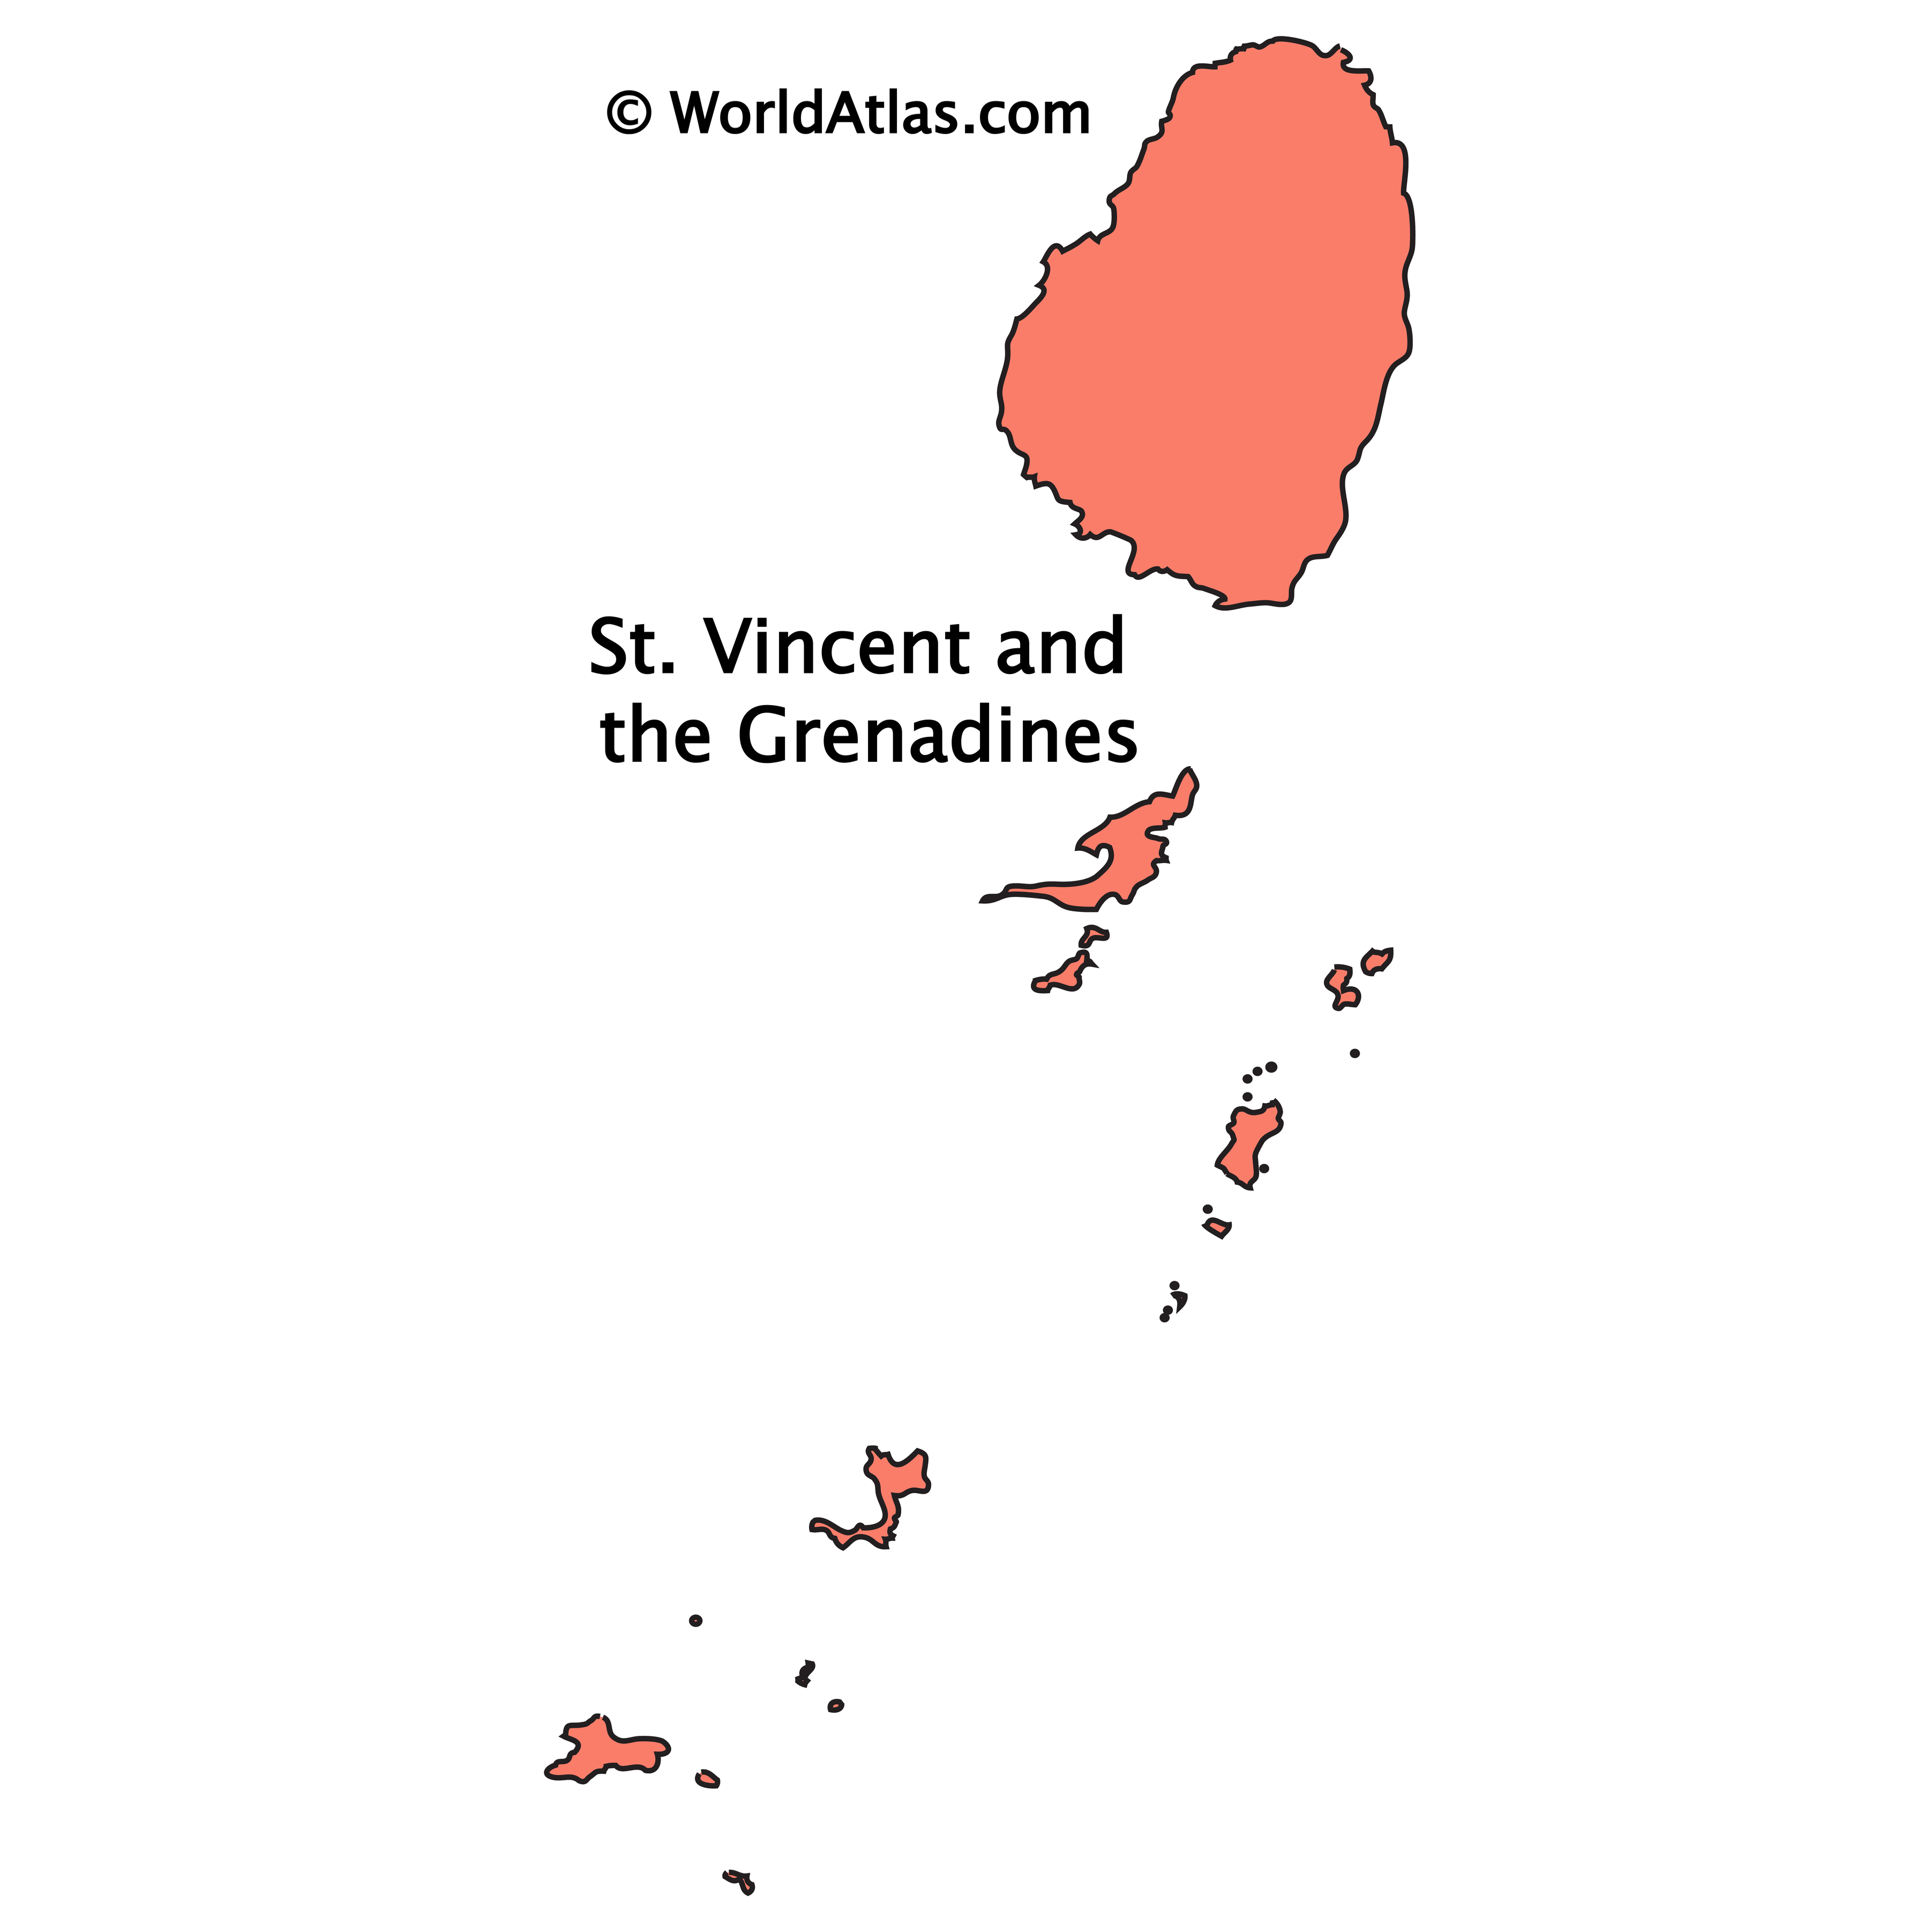 Outline Map of St. Vincent and the Grenadines